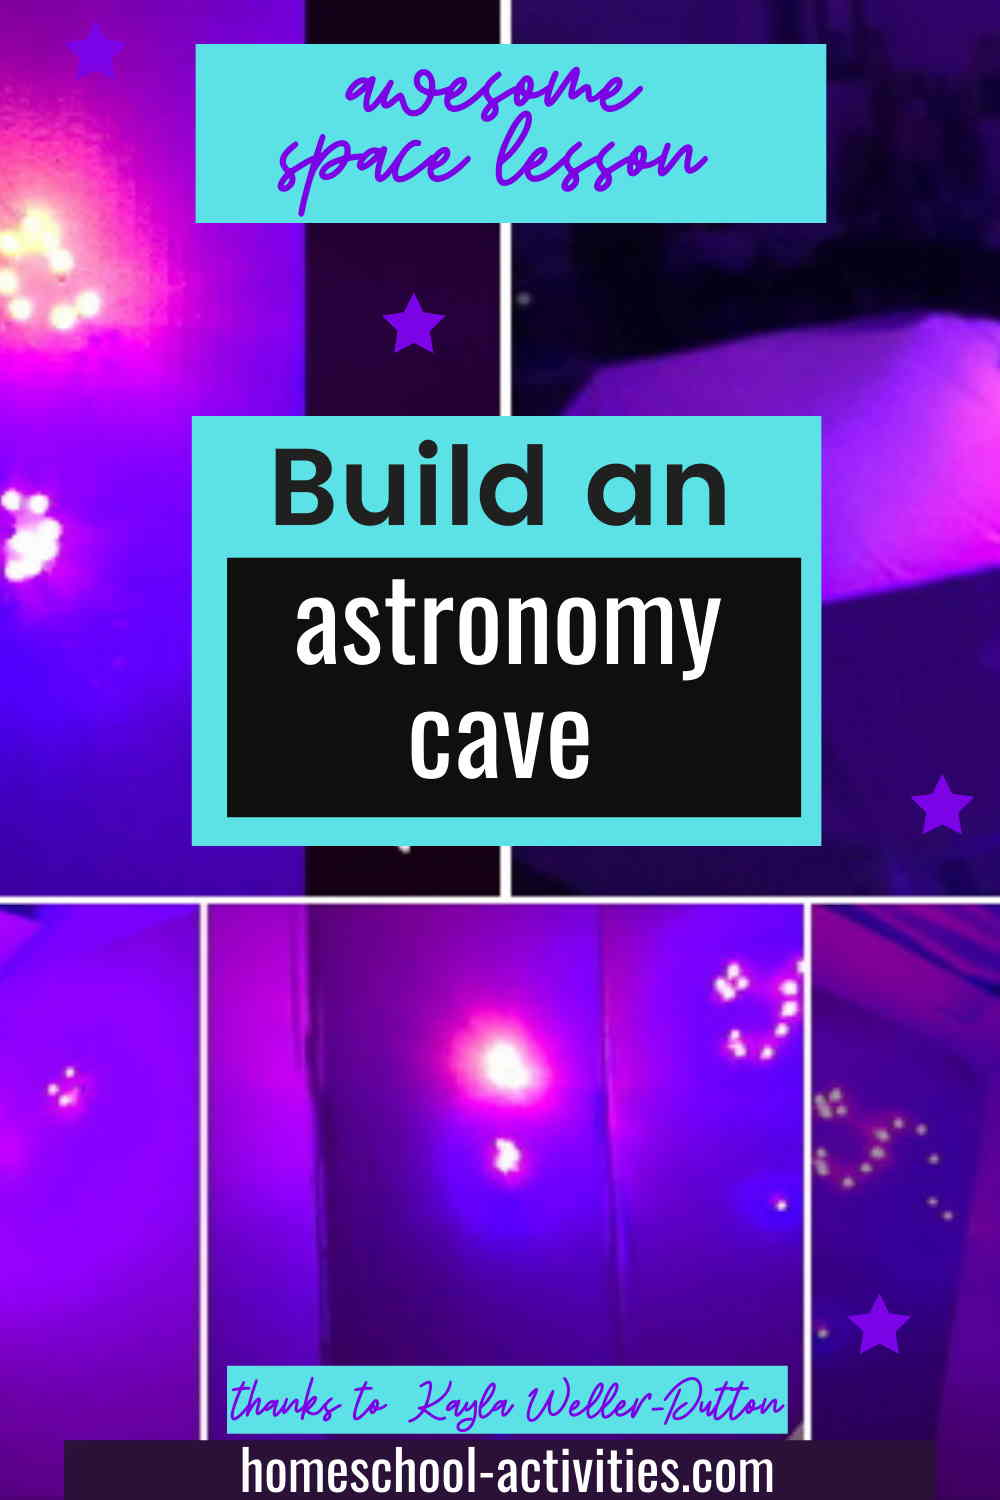 Build an astronomy cave with star constellations